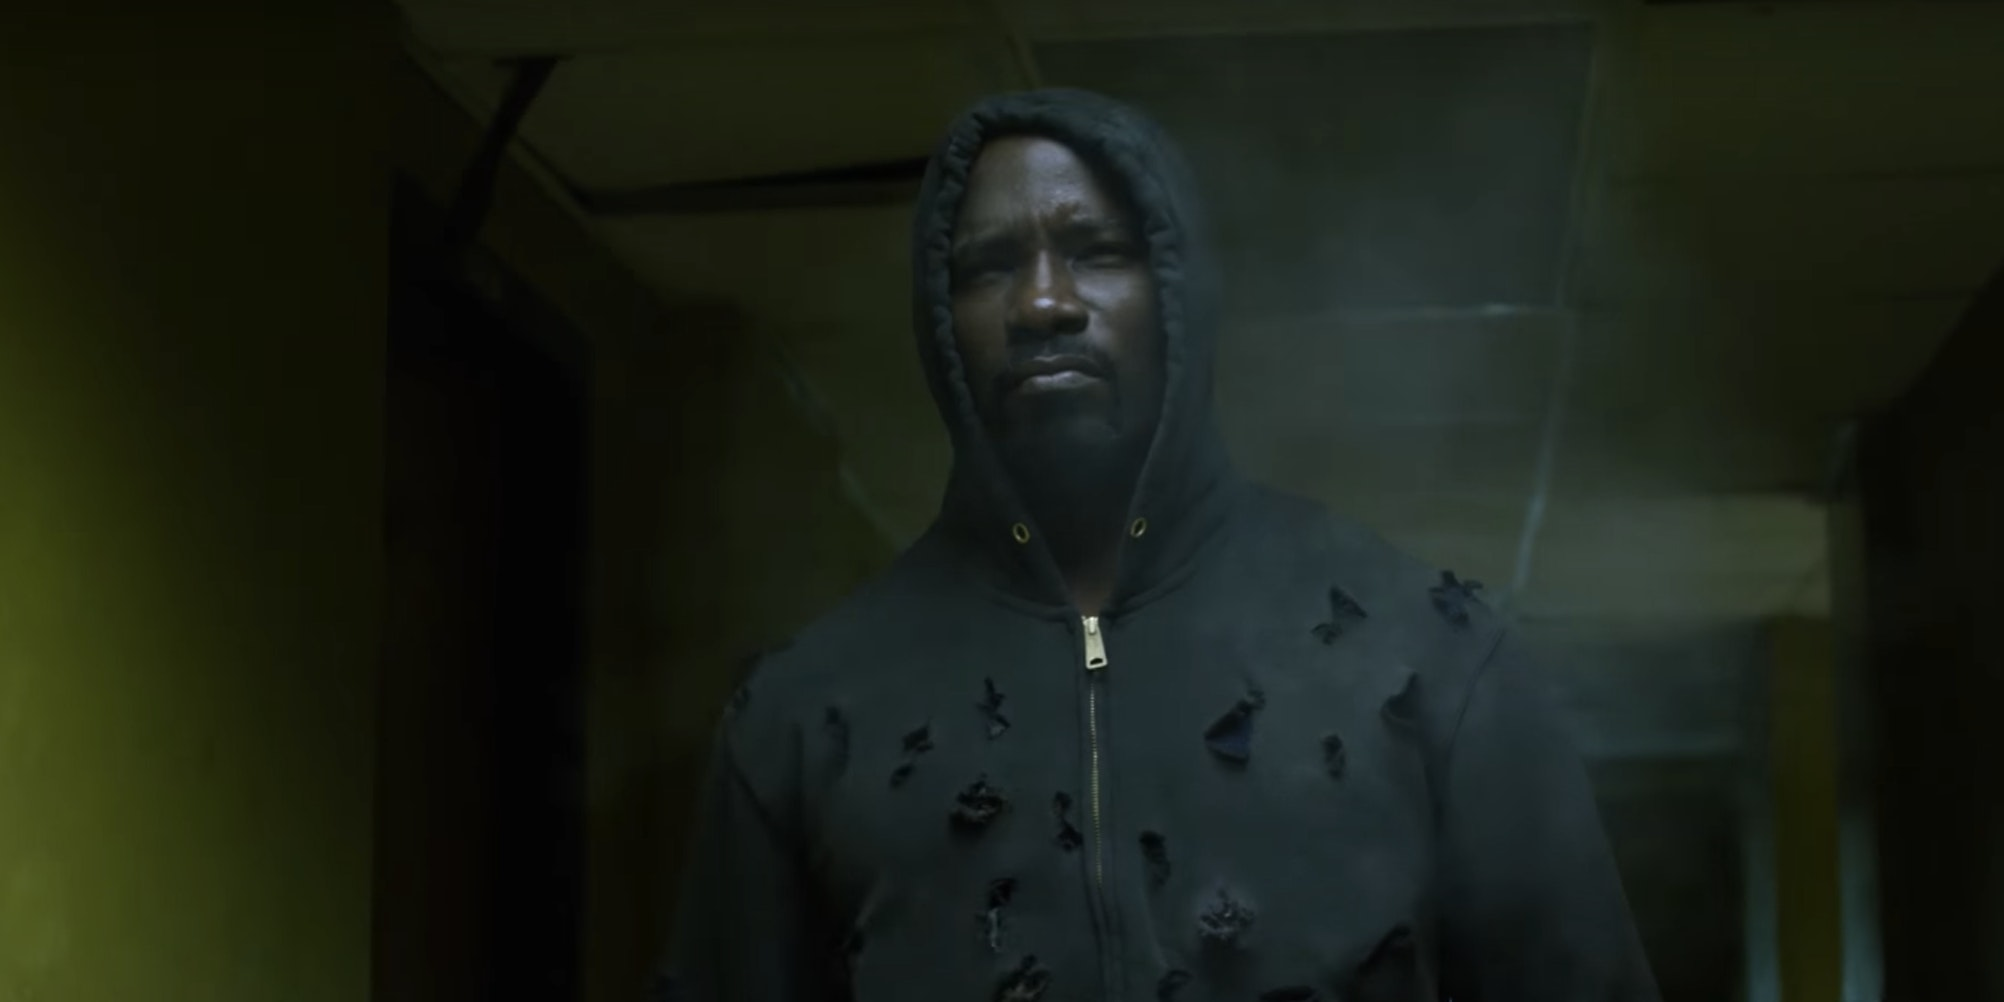 A still from the new Netflix show 'Luke Cage' shows that he is literally bulletproof.